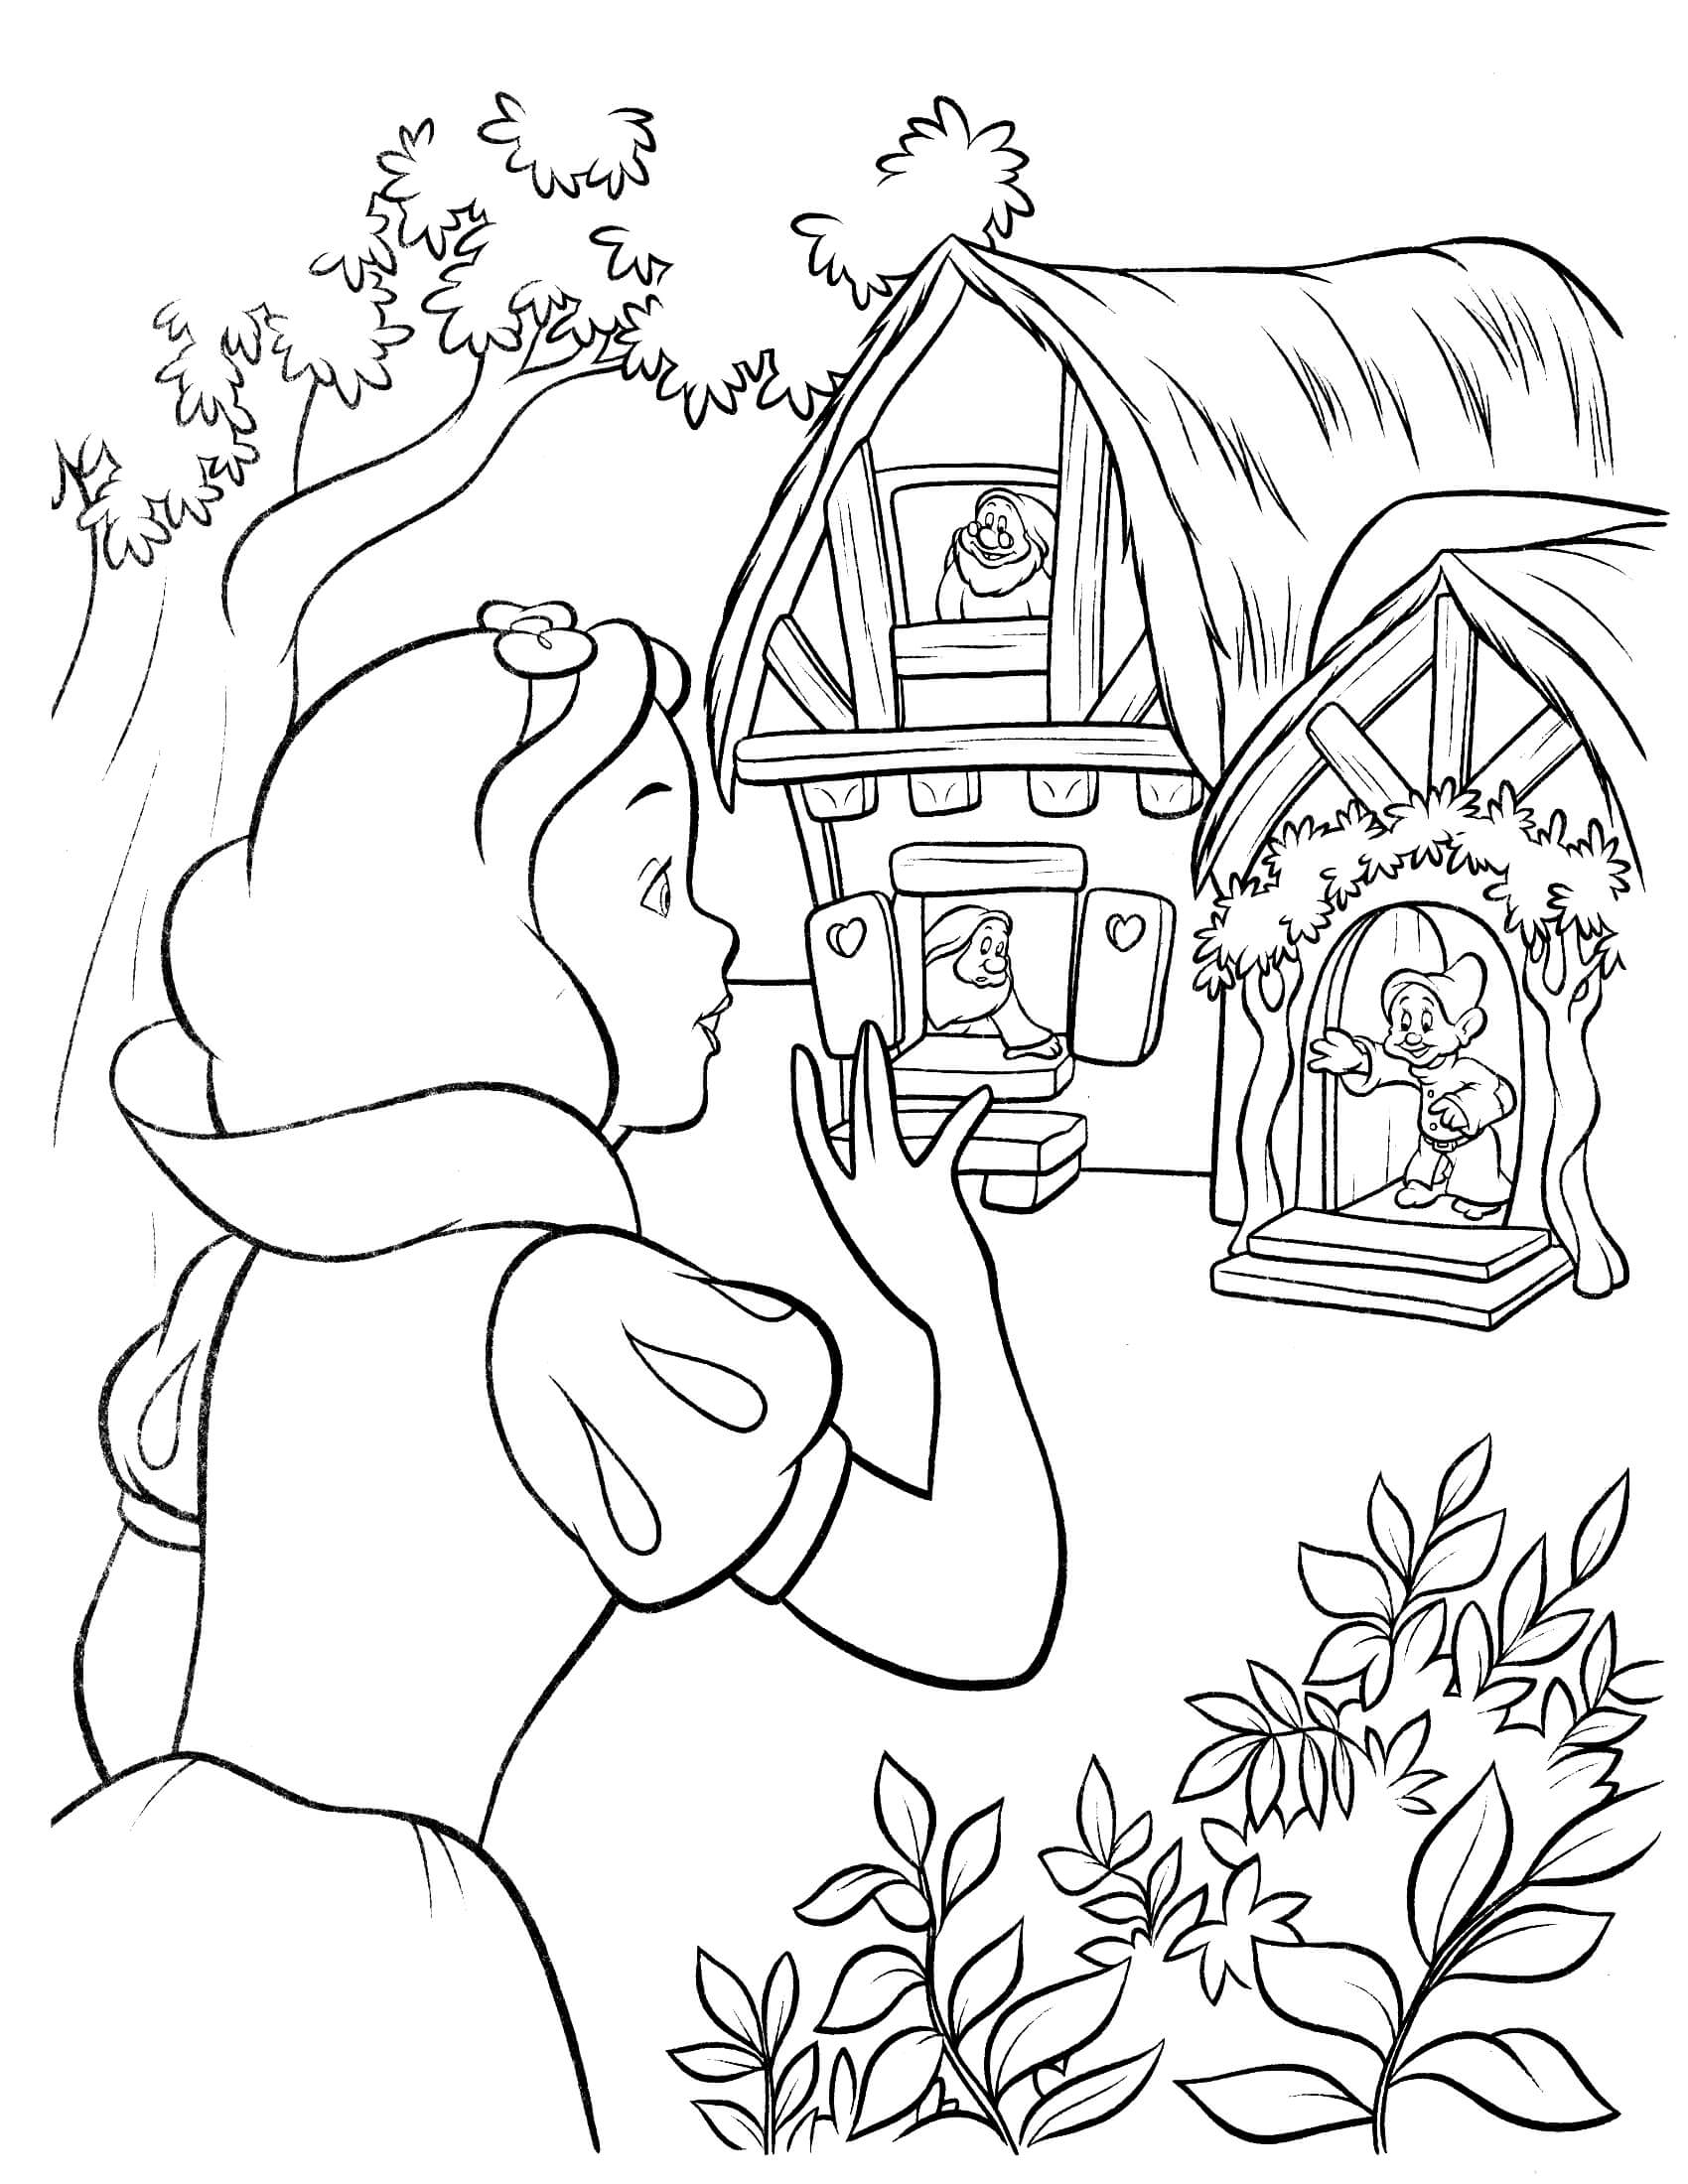 snow coloring page free printable winter coloring pages for kids page coloring snow